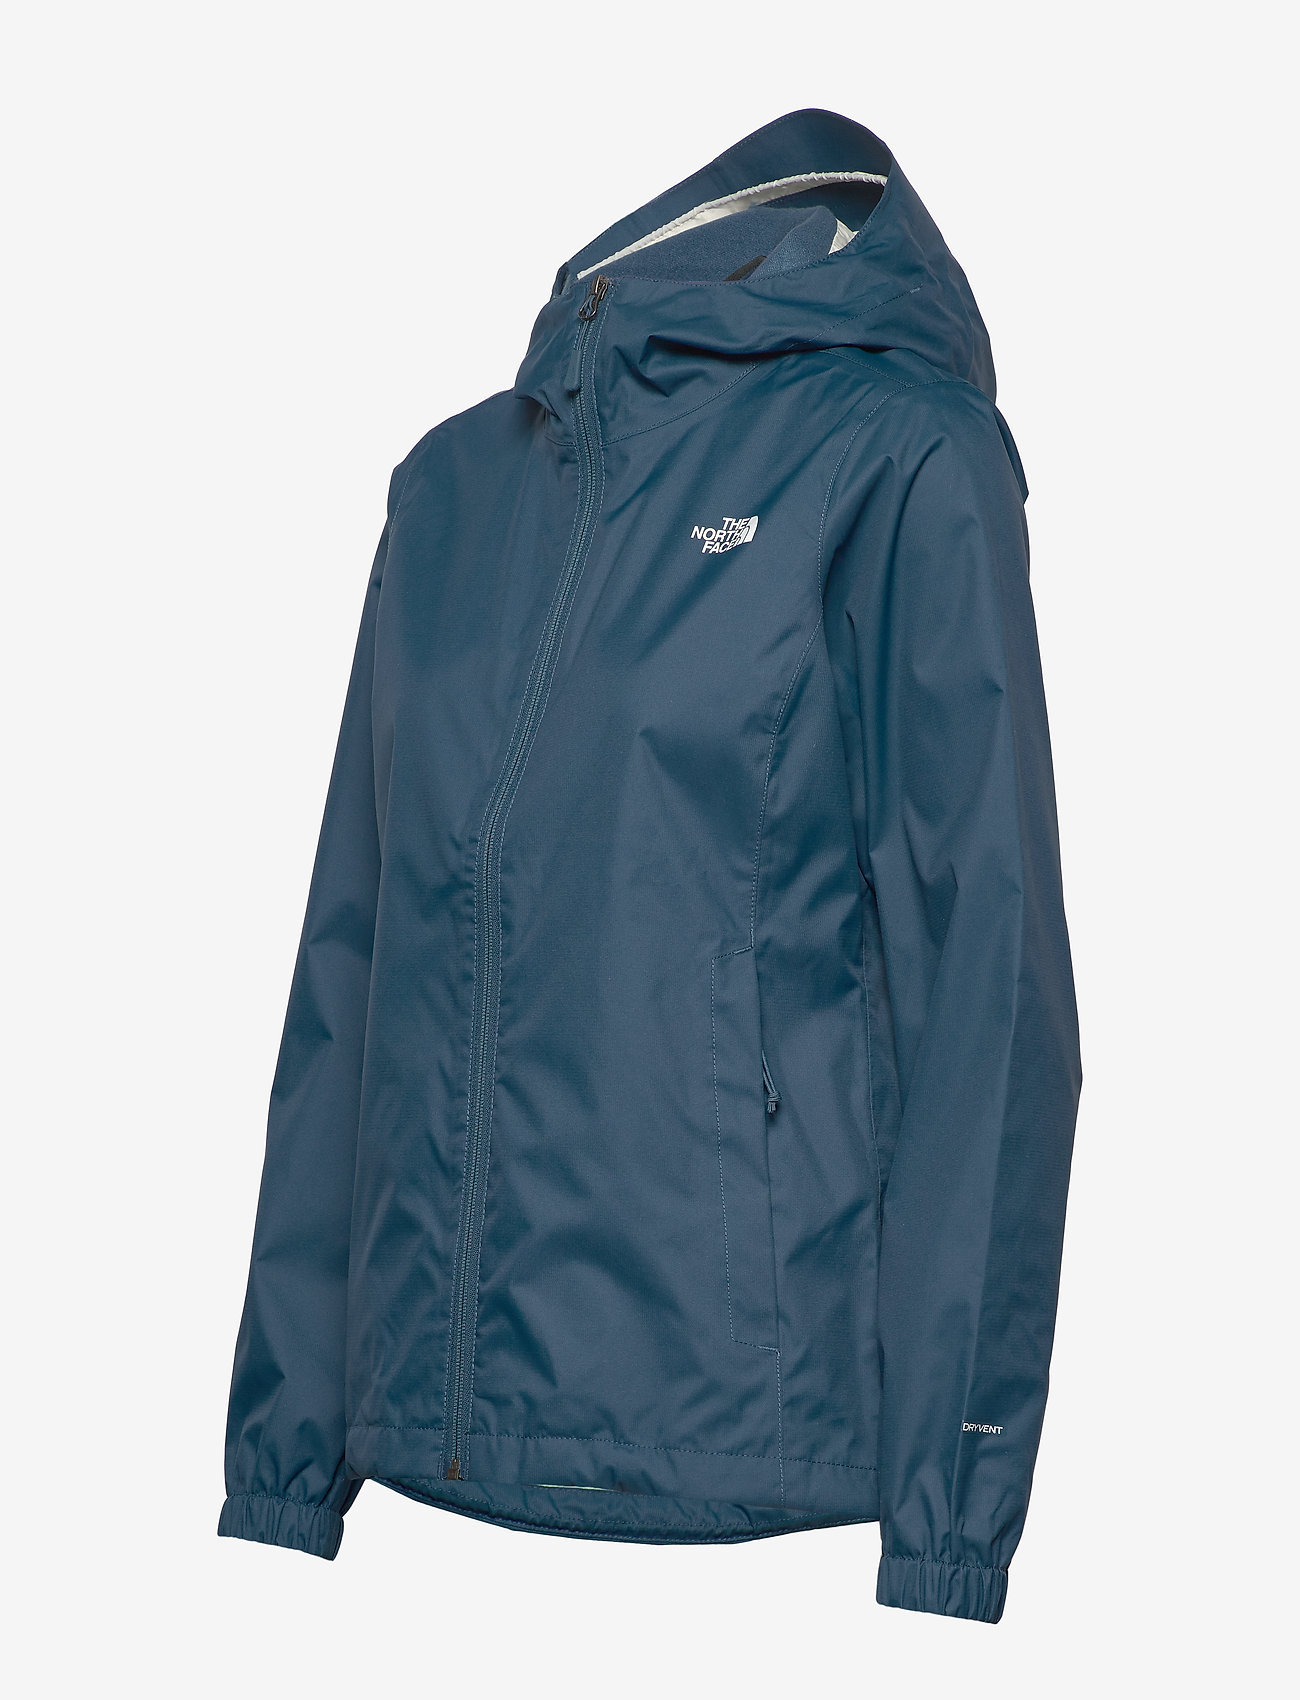 The North Face W QUEST JACKET - Jakker og kåper BLUE WING TEAL - Dameklær Spesialtilbud